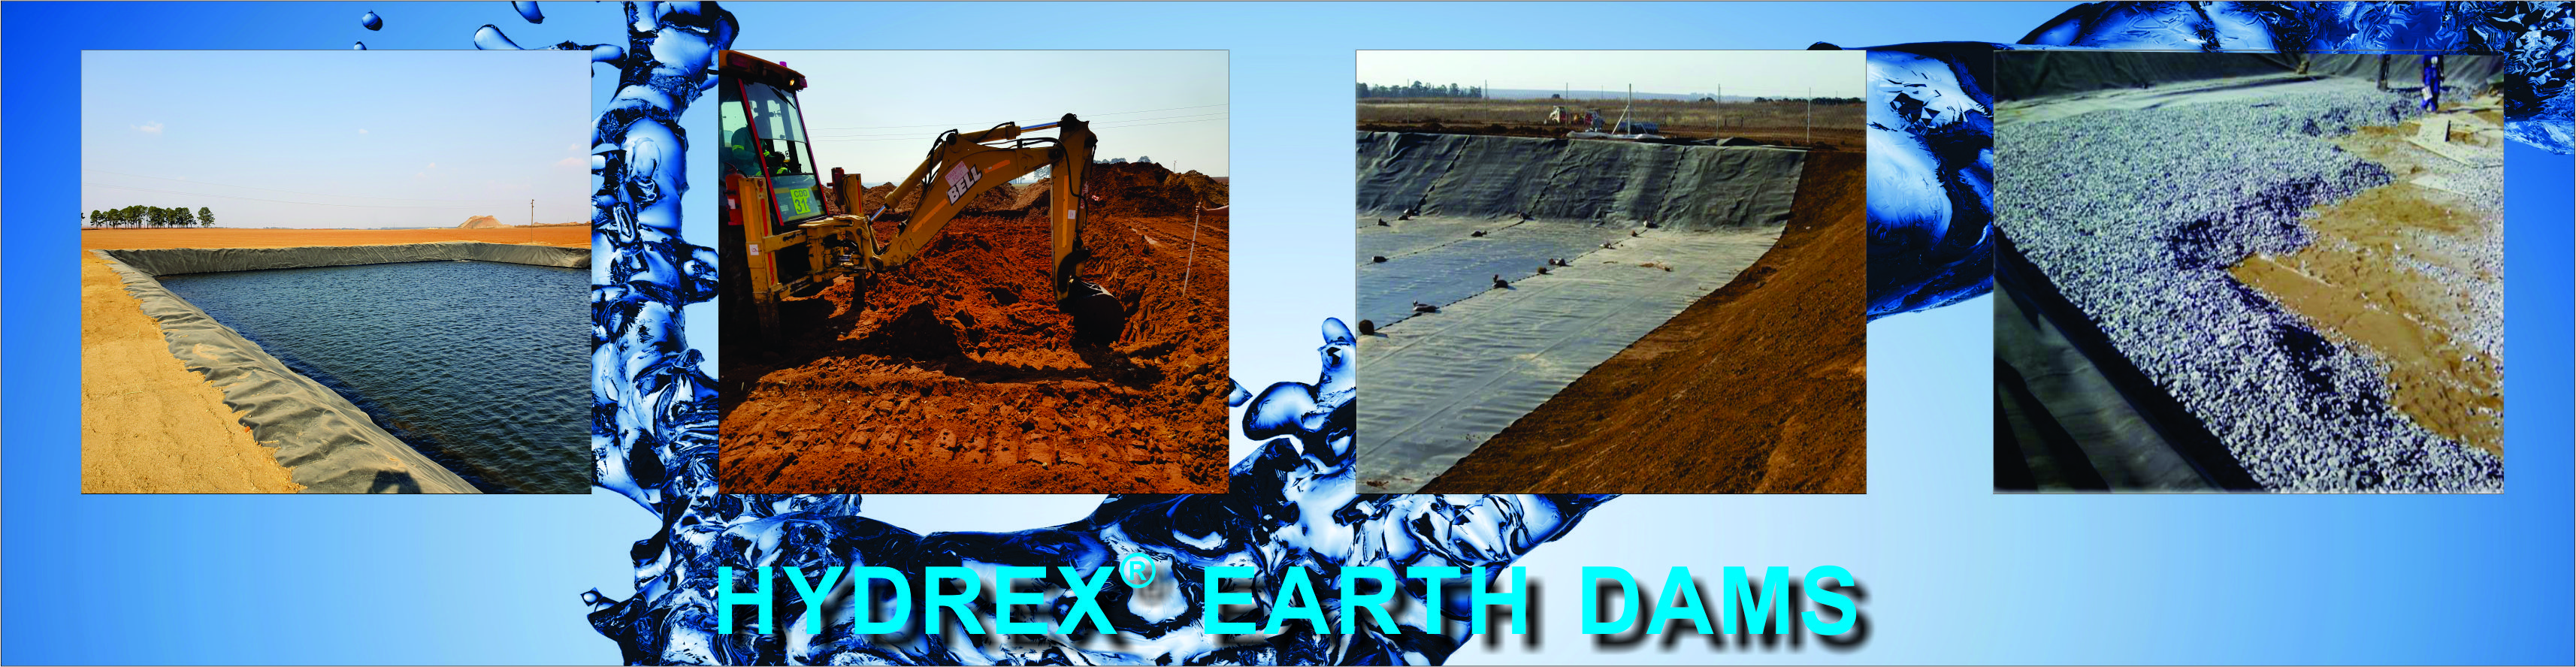 Earth dam design and construction